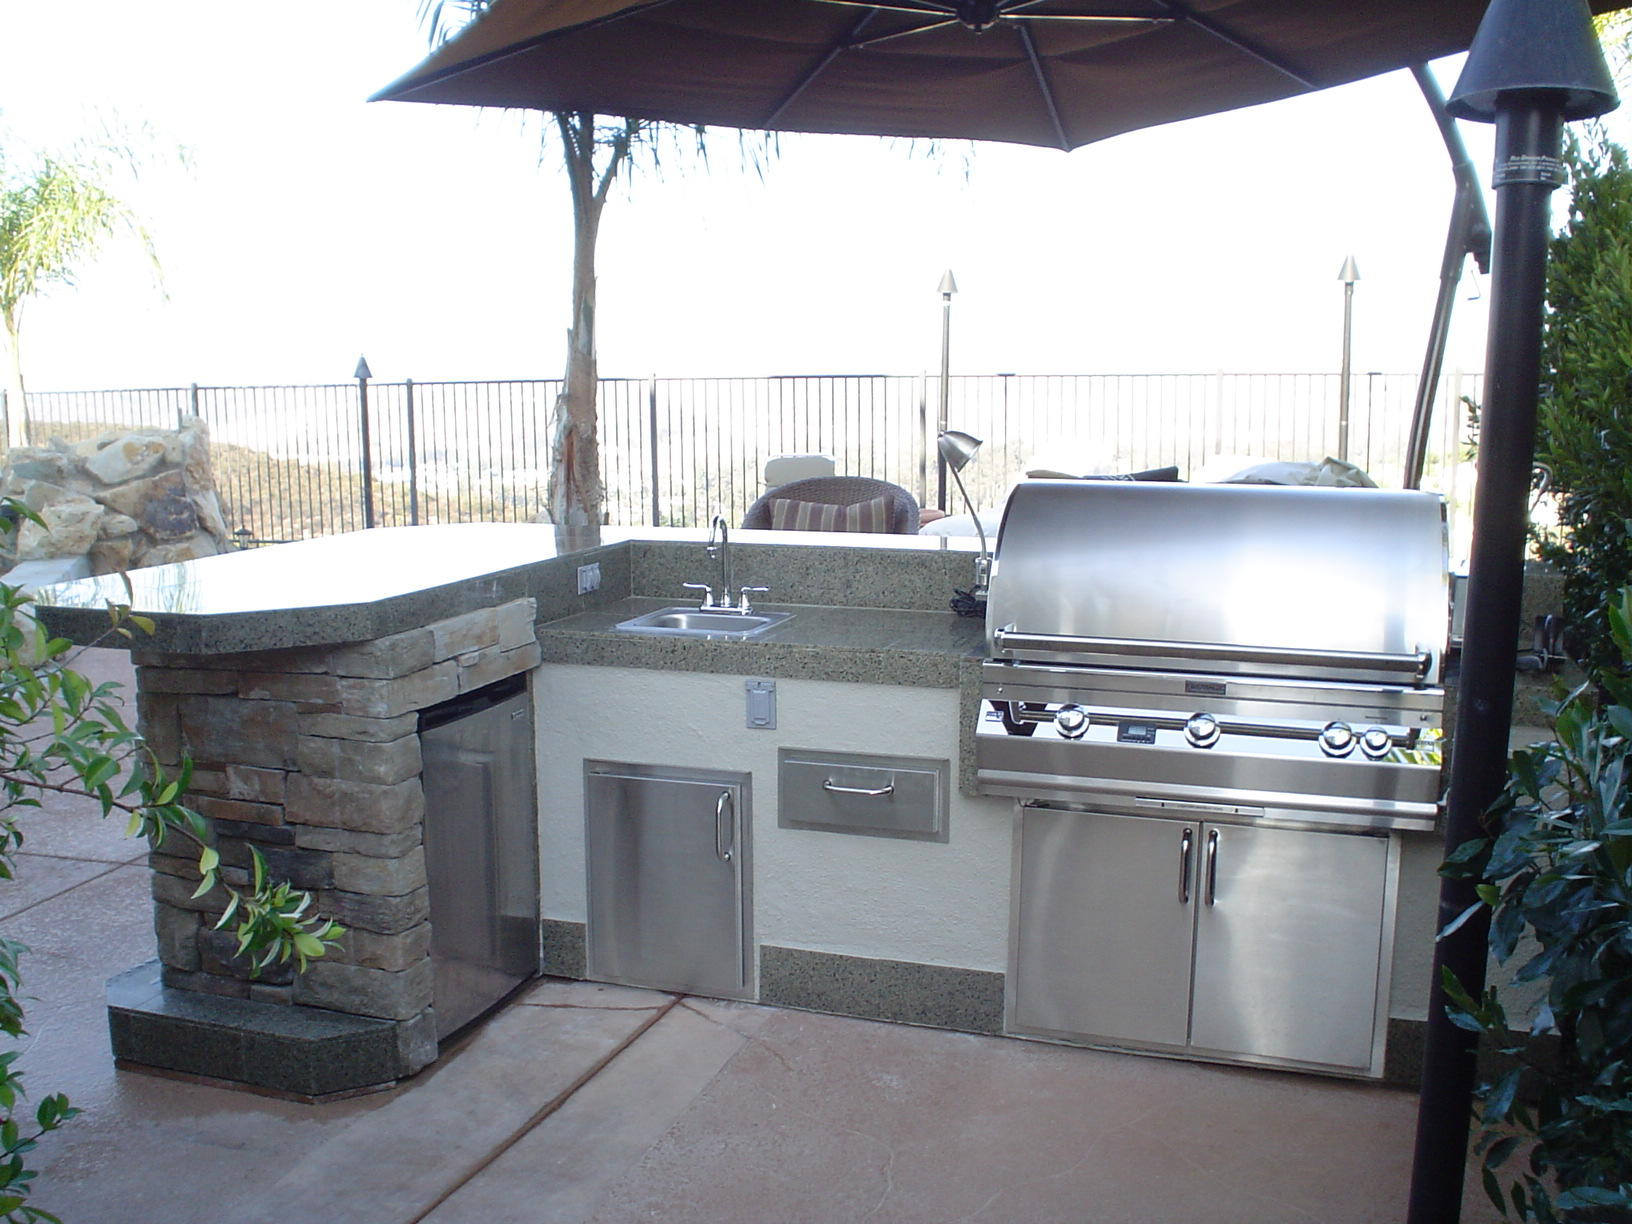 15′ outdoor kitchen featuring a 660i Fire Magic grill, sink, single ...